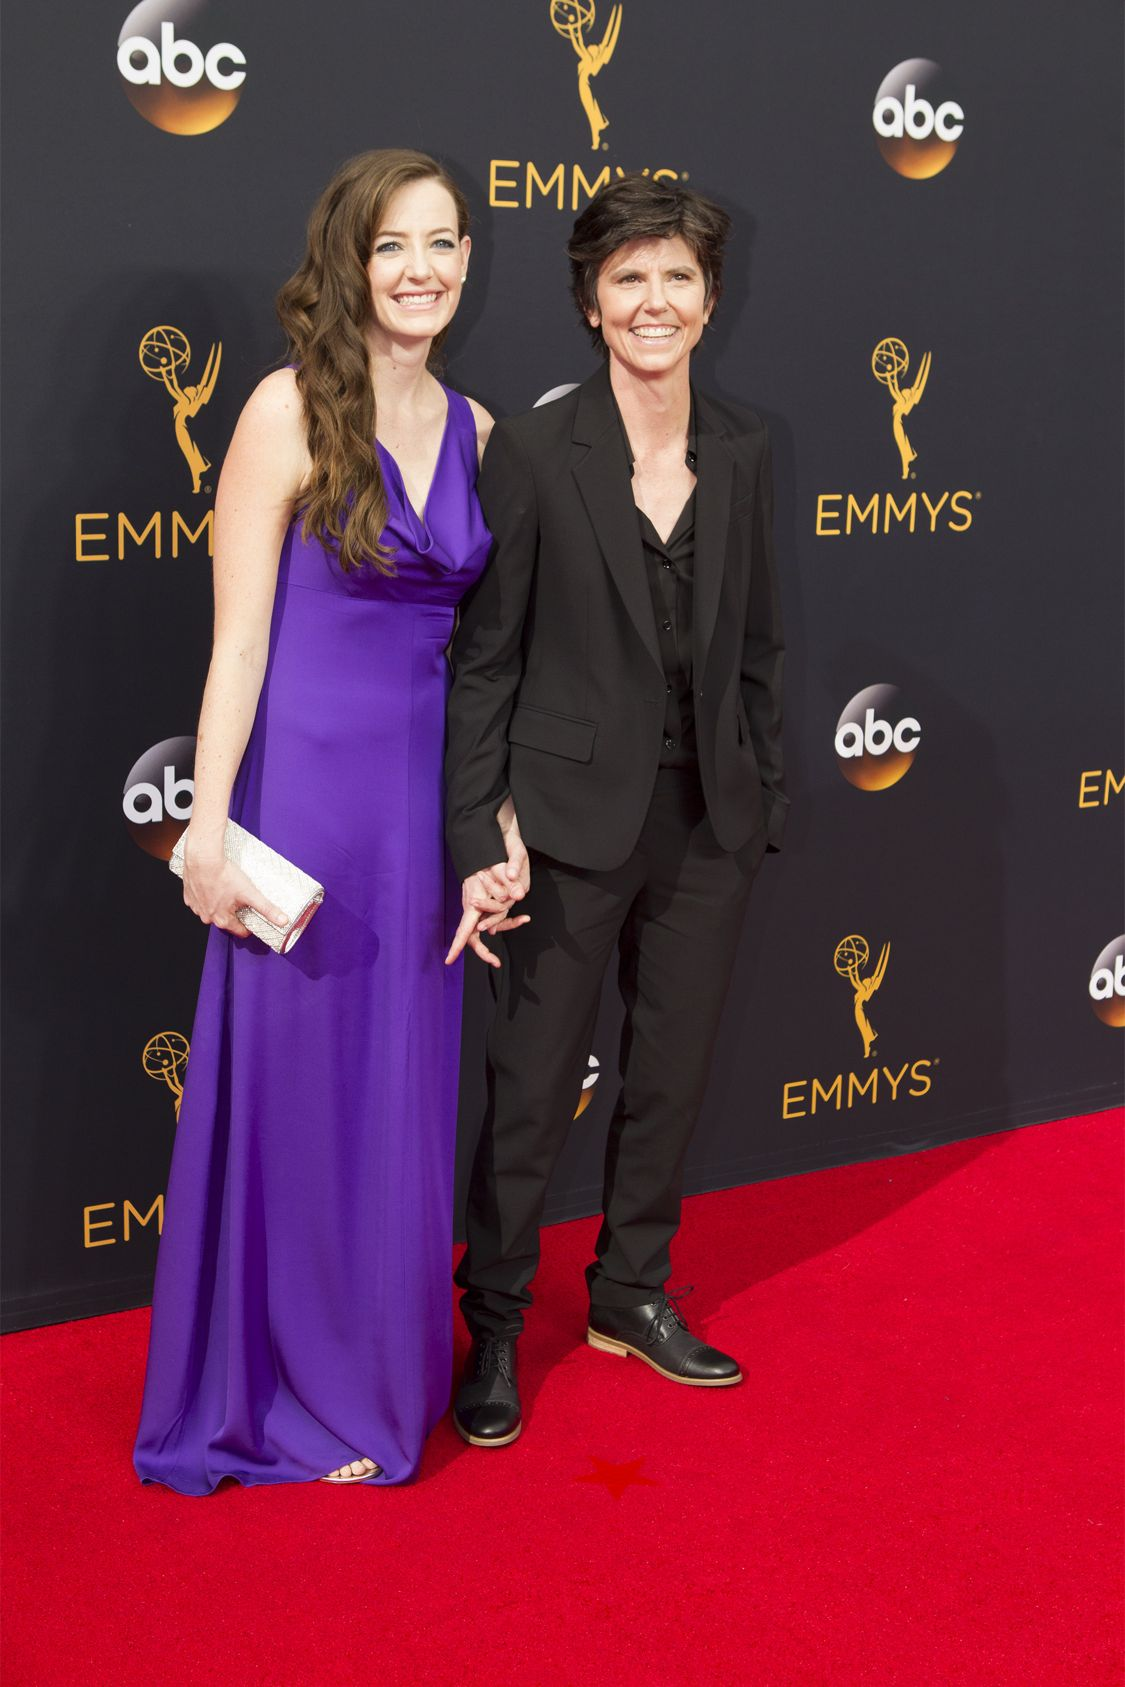 """THE 68TH EMMY(r) AWARDS - """"The 68th Emmy Awards"""" broadcasts live from The Microsoft Theater in Los Angeles, Sunday, September 18 (7:00-11:00 p.m. EDT/4:00-8:00 p.m. PDT), on ABC and is hosted by Jimmy Kimmel. (ABC/Rick Rowell) STEPHANIE ALLYNE, TIG NOTARO"""